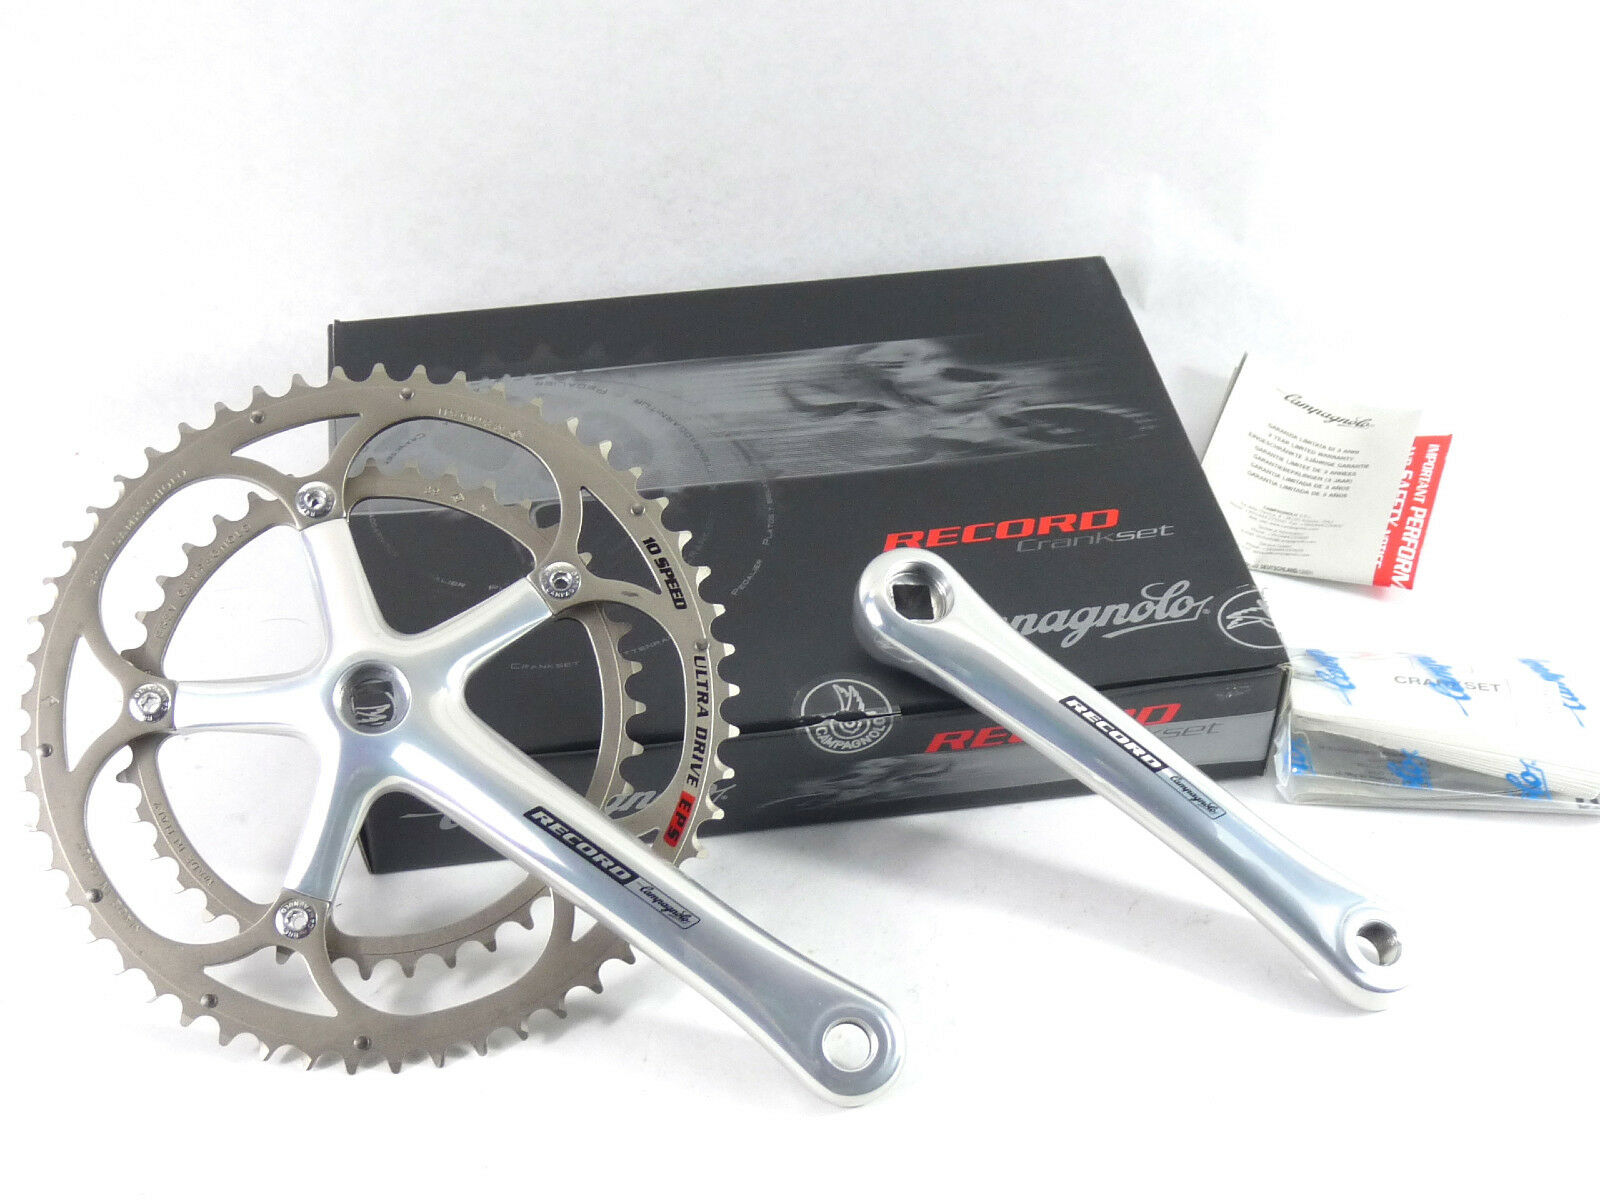 Campagnolo Record 10 Speed  Crankset 172.5mm 53-39 Ultra Drive EPS 2006 NOS  a lot of surprises